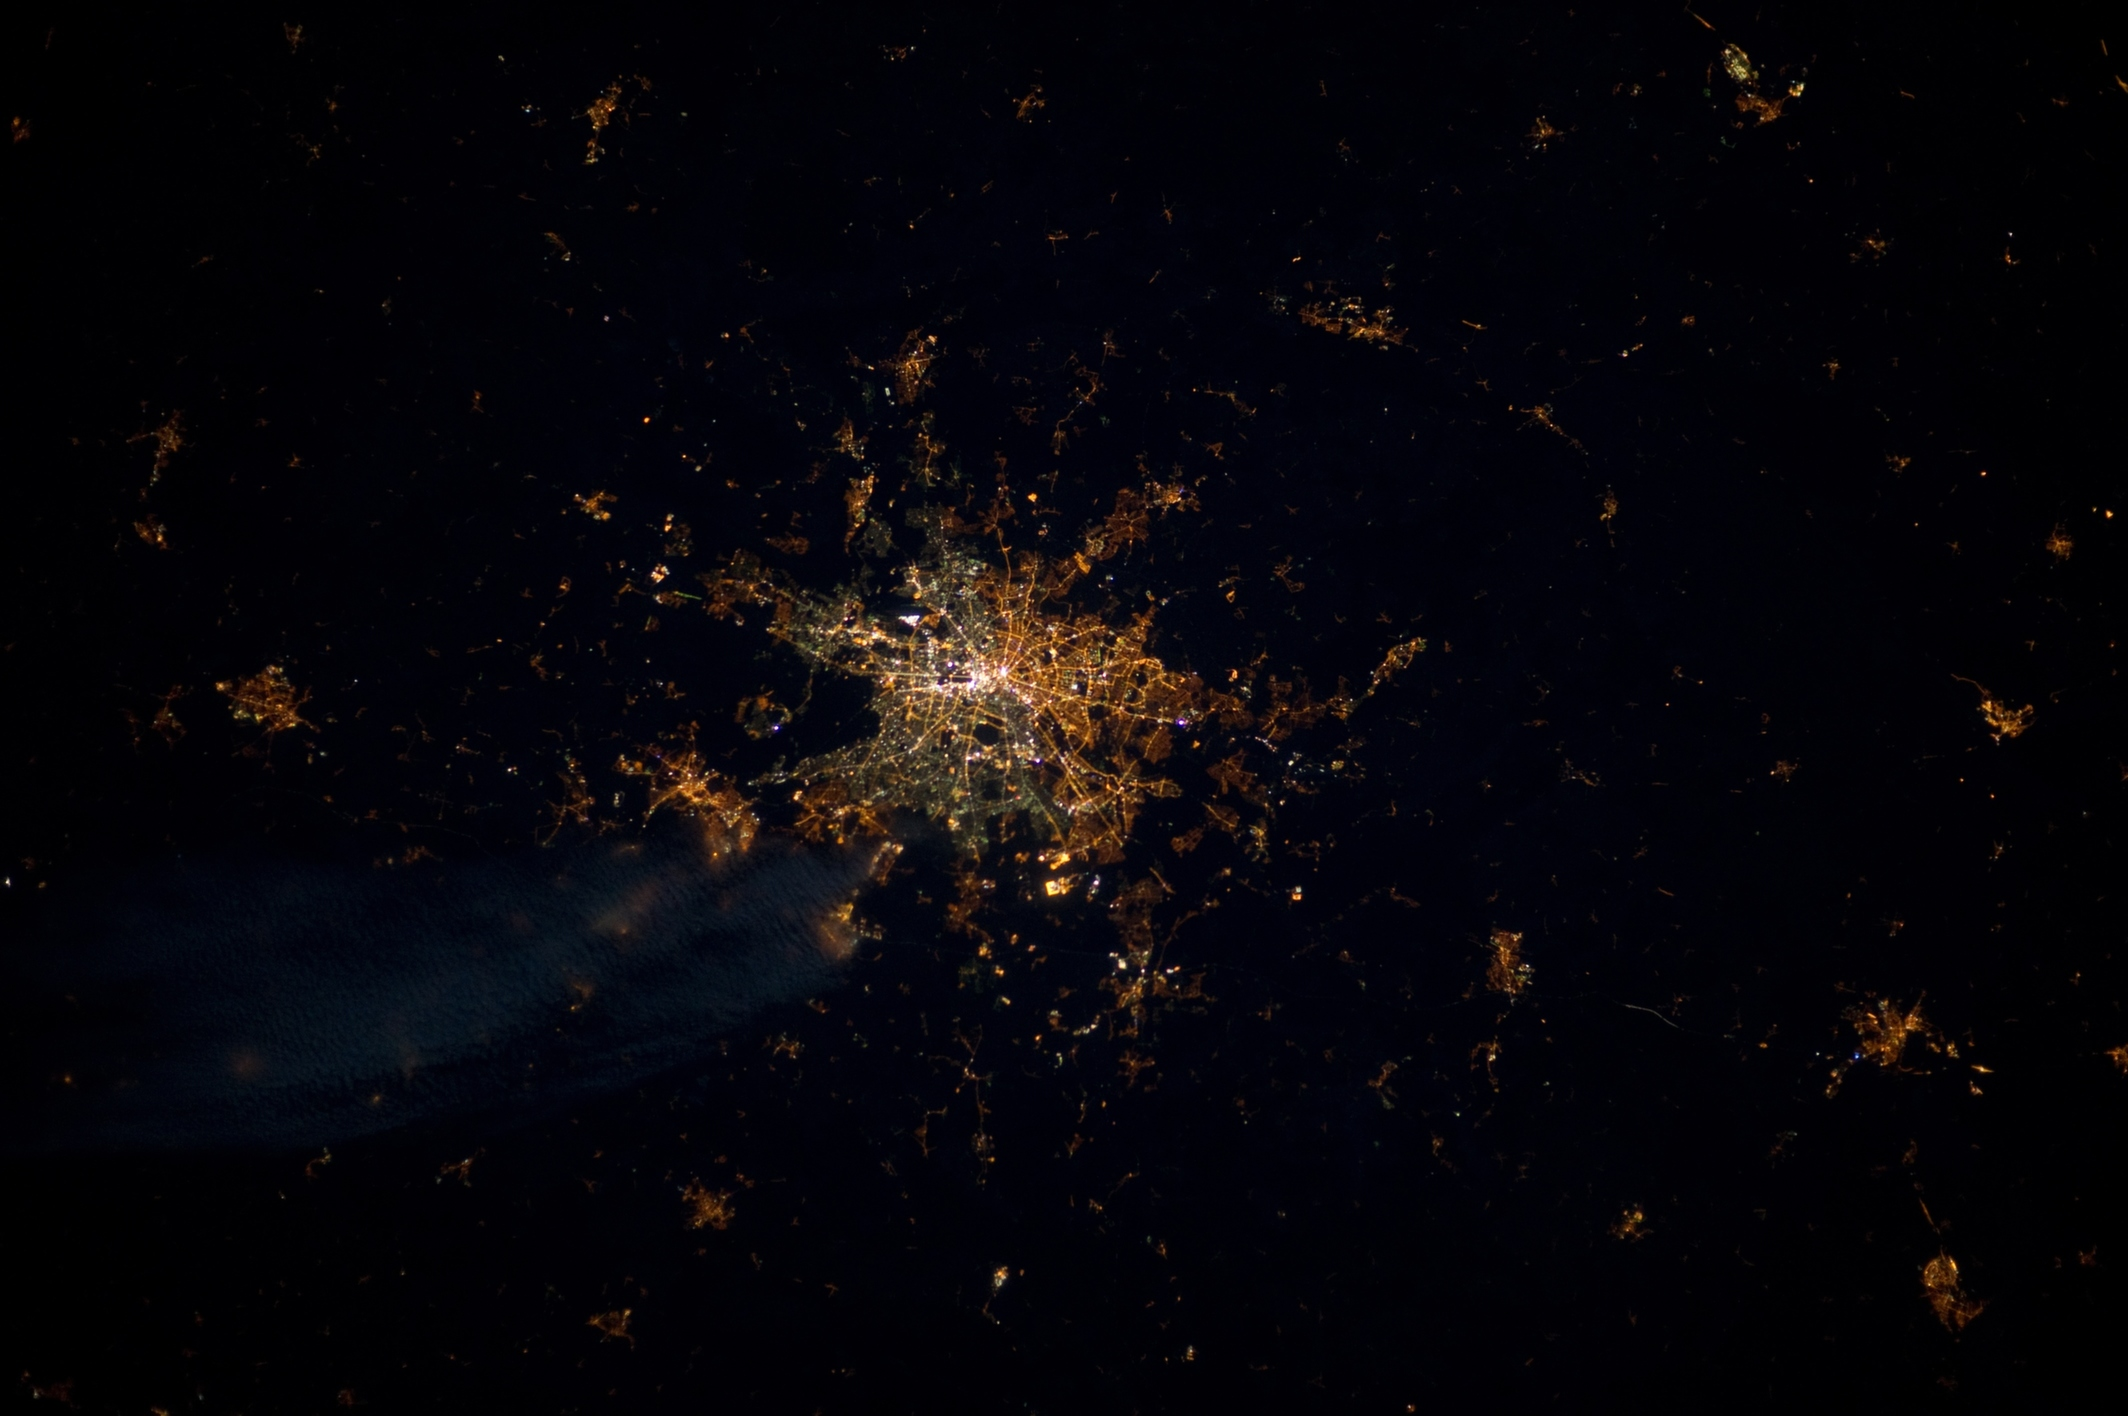 Different types of streetlighting show how Berlin was politically divided. ESA